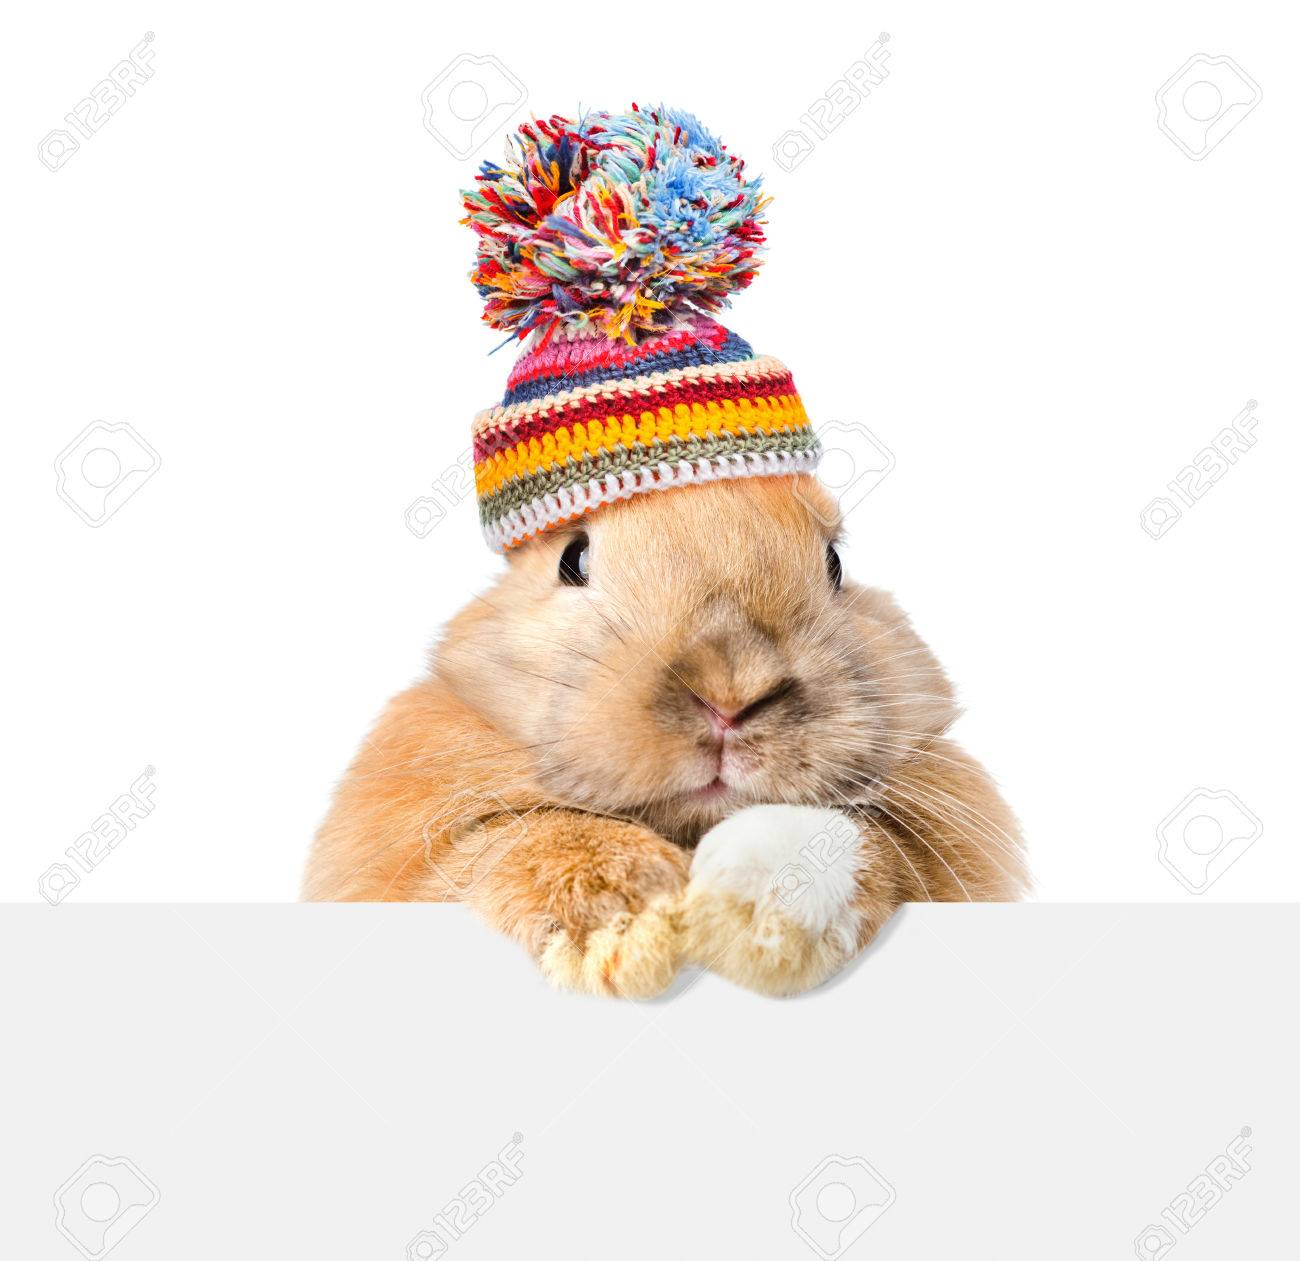 Rabbit wearing a warm hat looking over a signboard. Isolated on white background. - 61947476